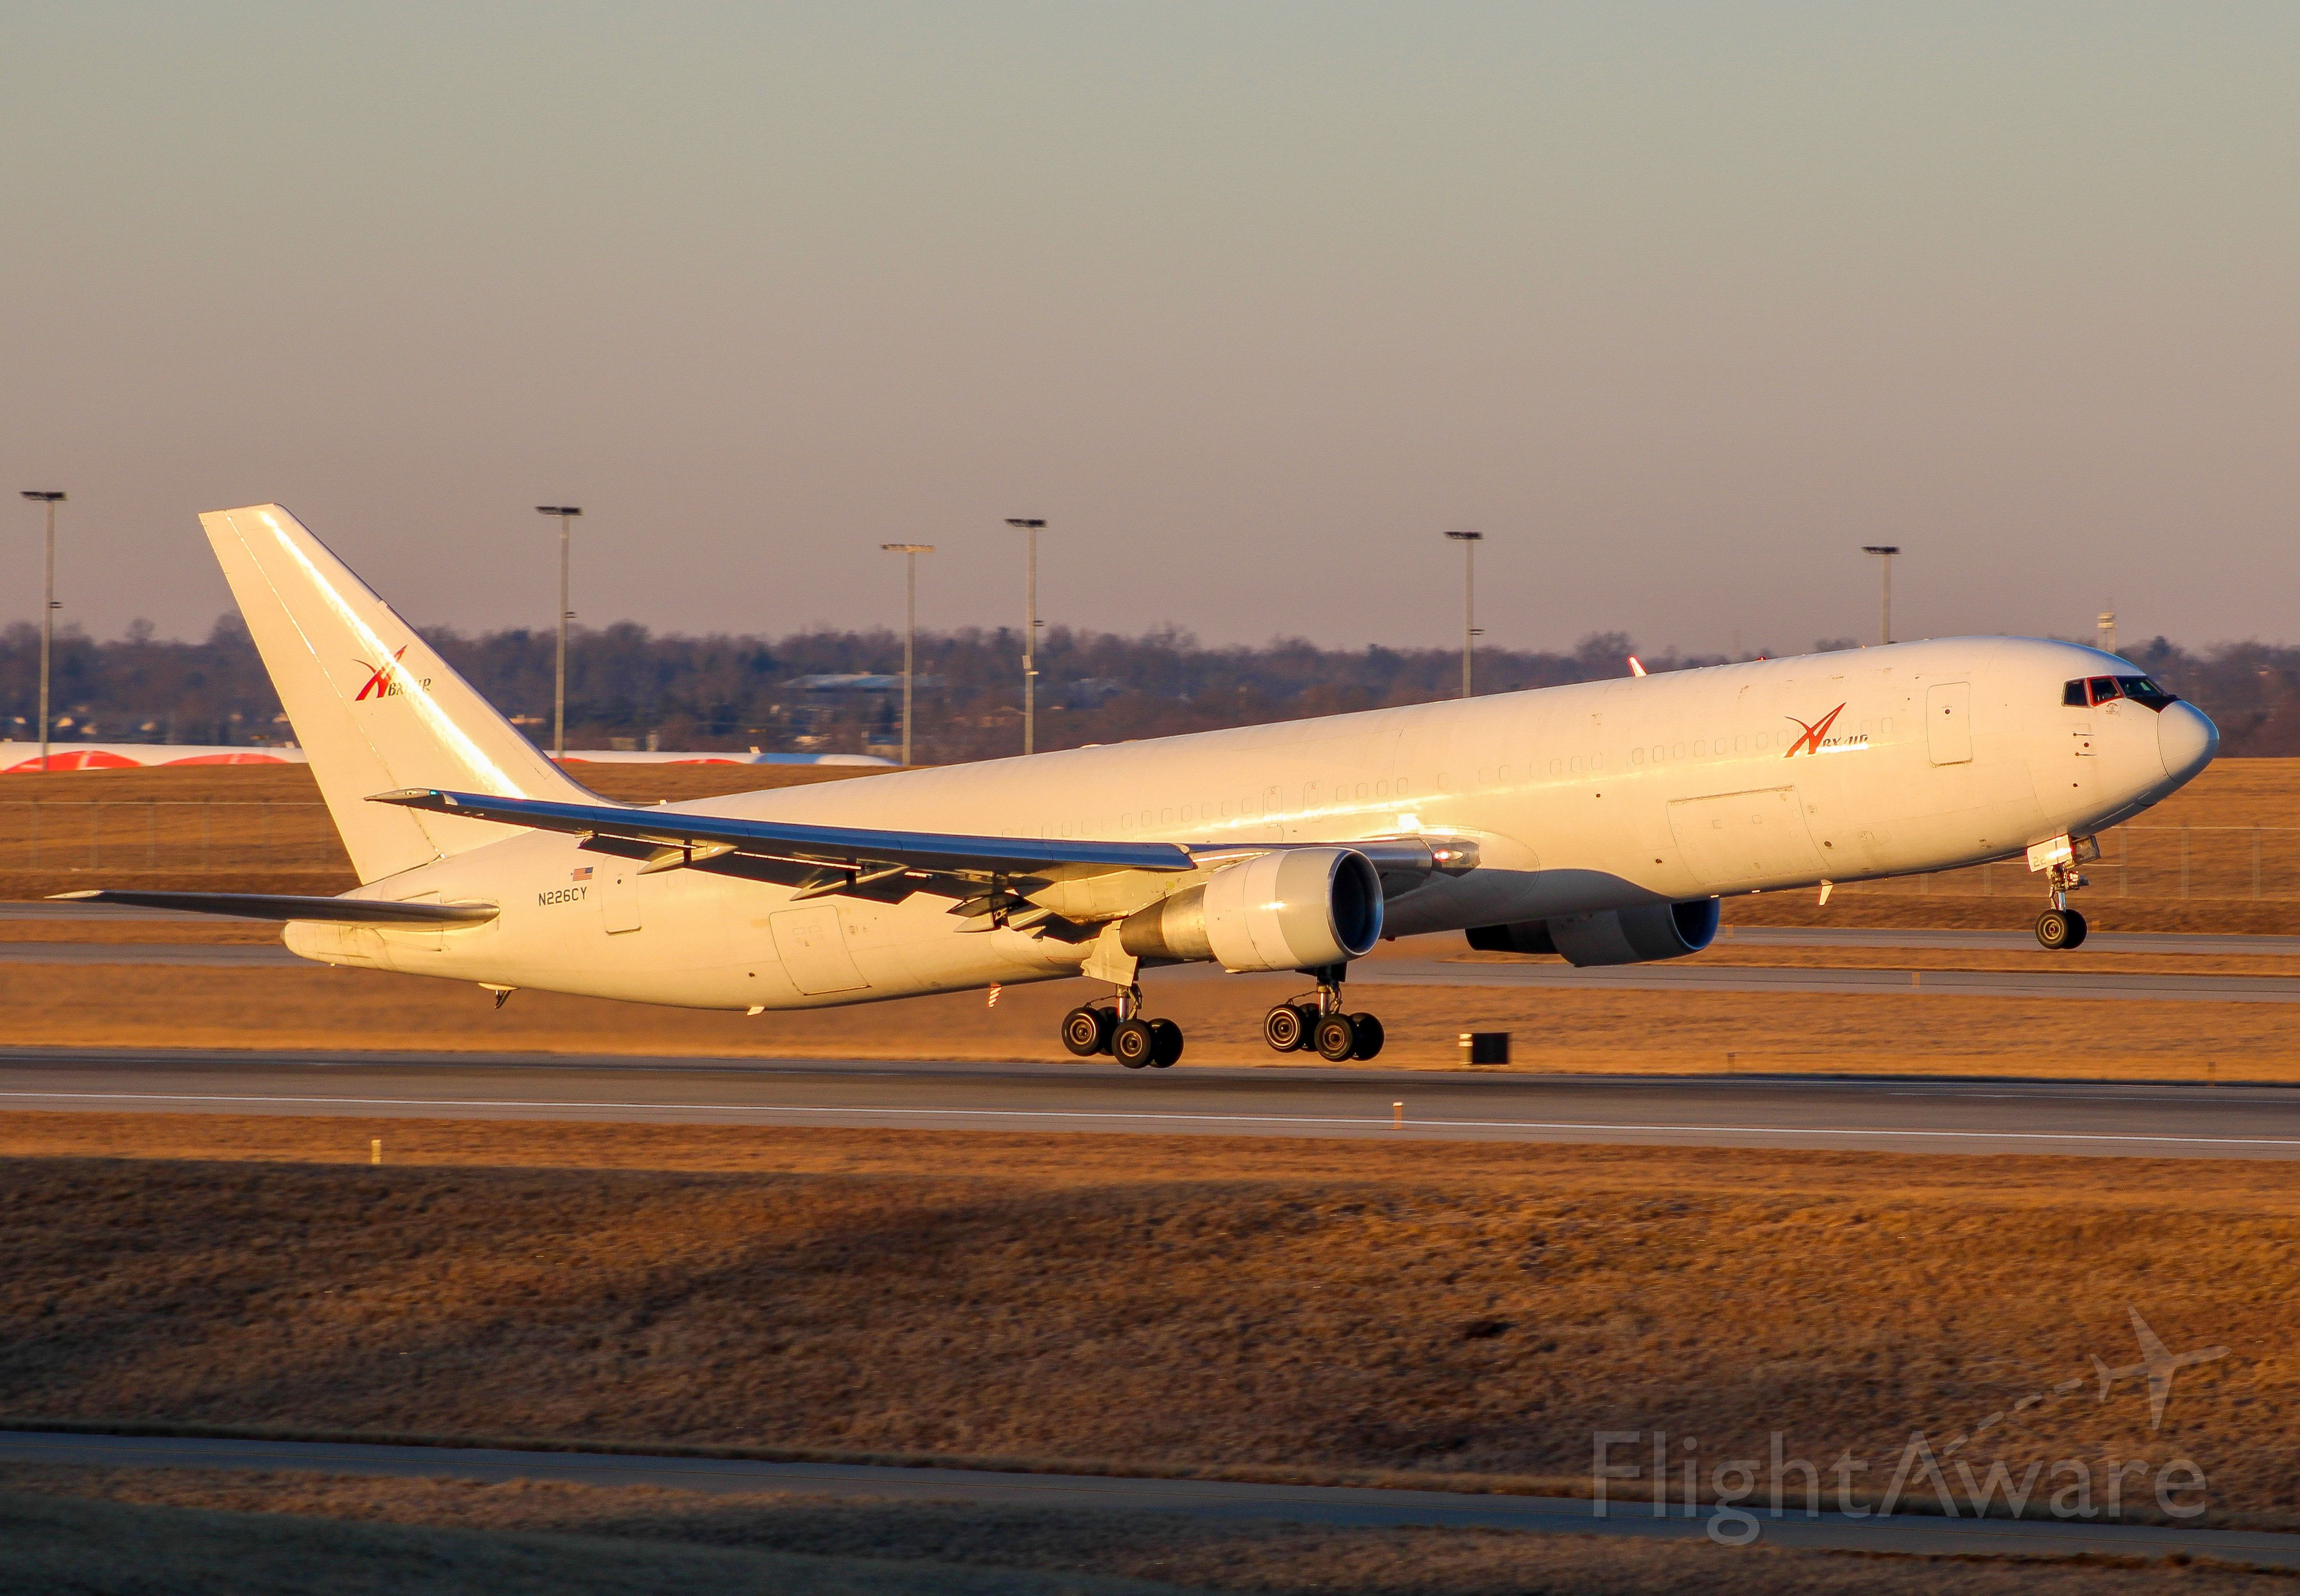 BOEING 767-300 (N266CY) - ABX all white 767-300 departing RWY 36R in the morning sun of CVG